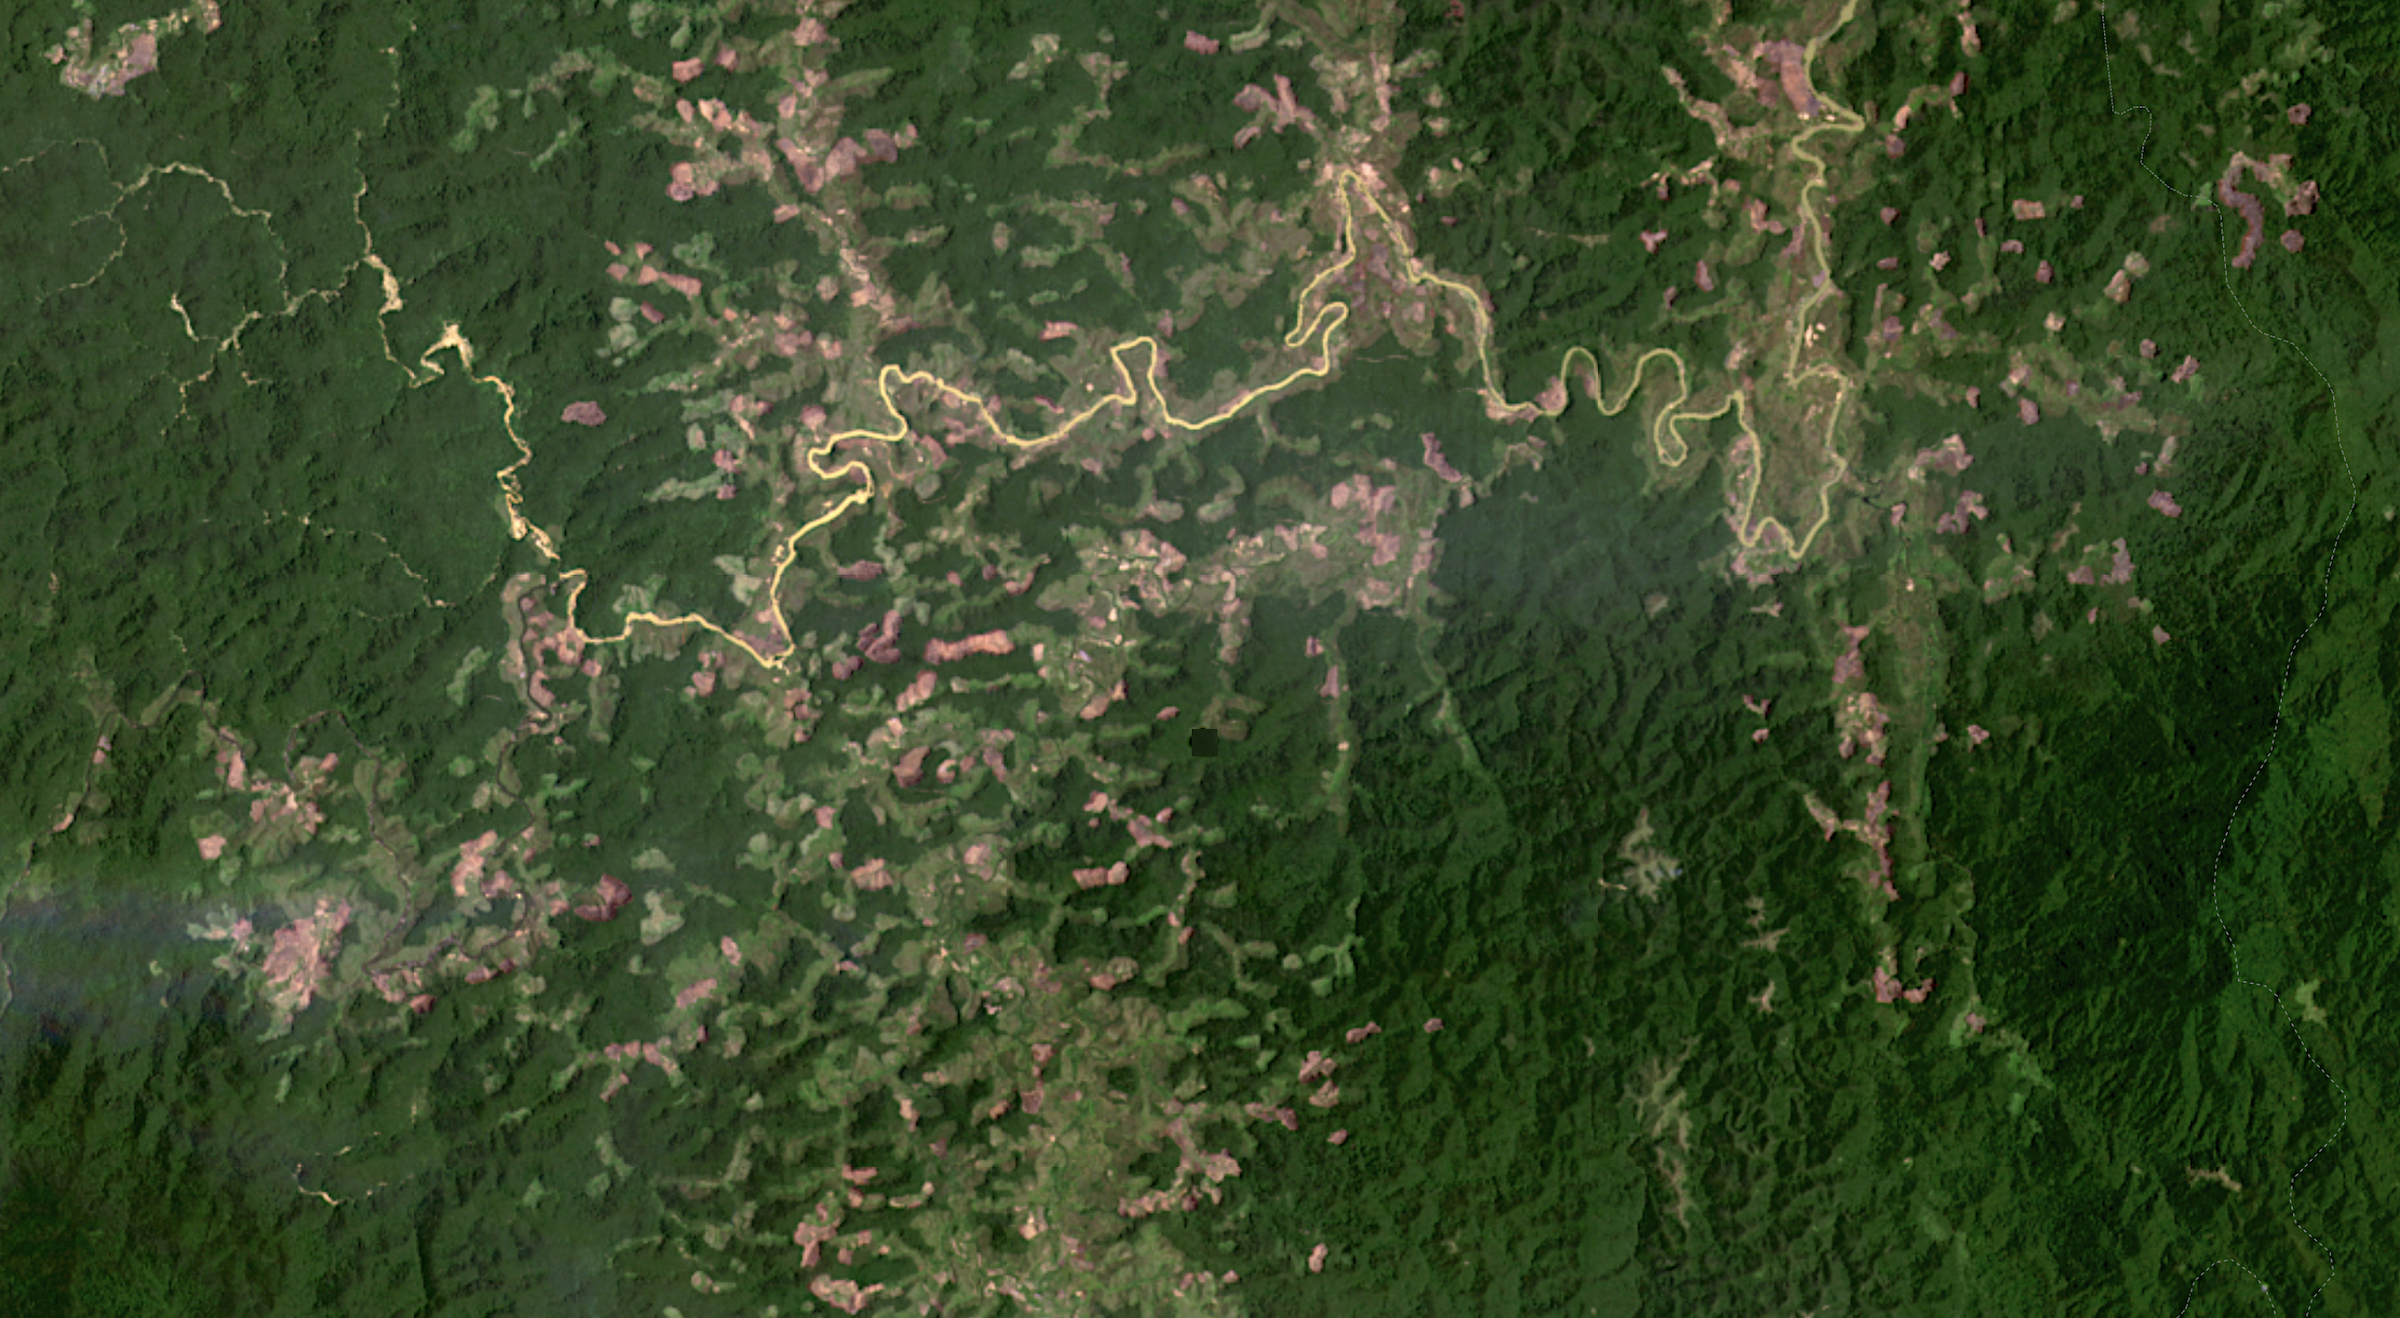 Satellite imagery captured in December 2020 shows many new clearings cutting into rainforest in CAZ. Image from Planet Labs.